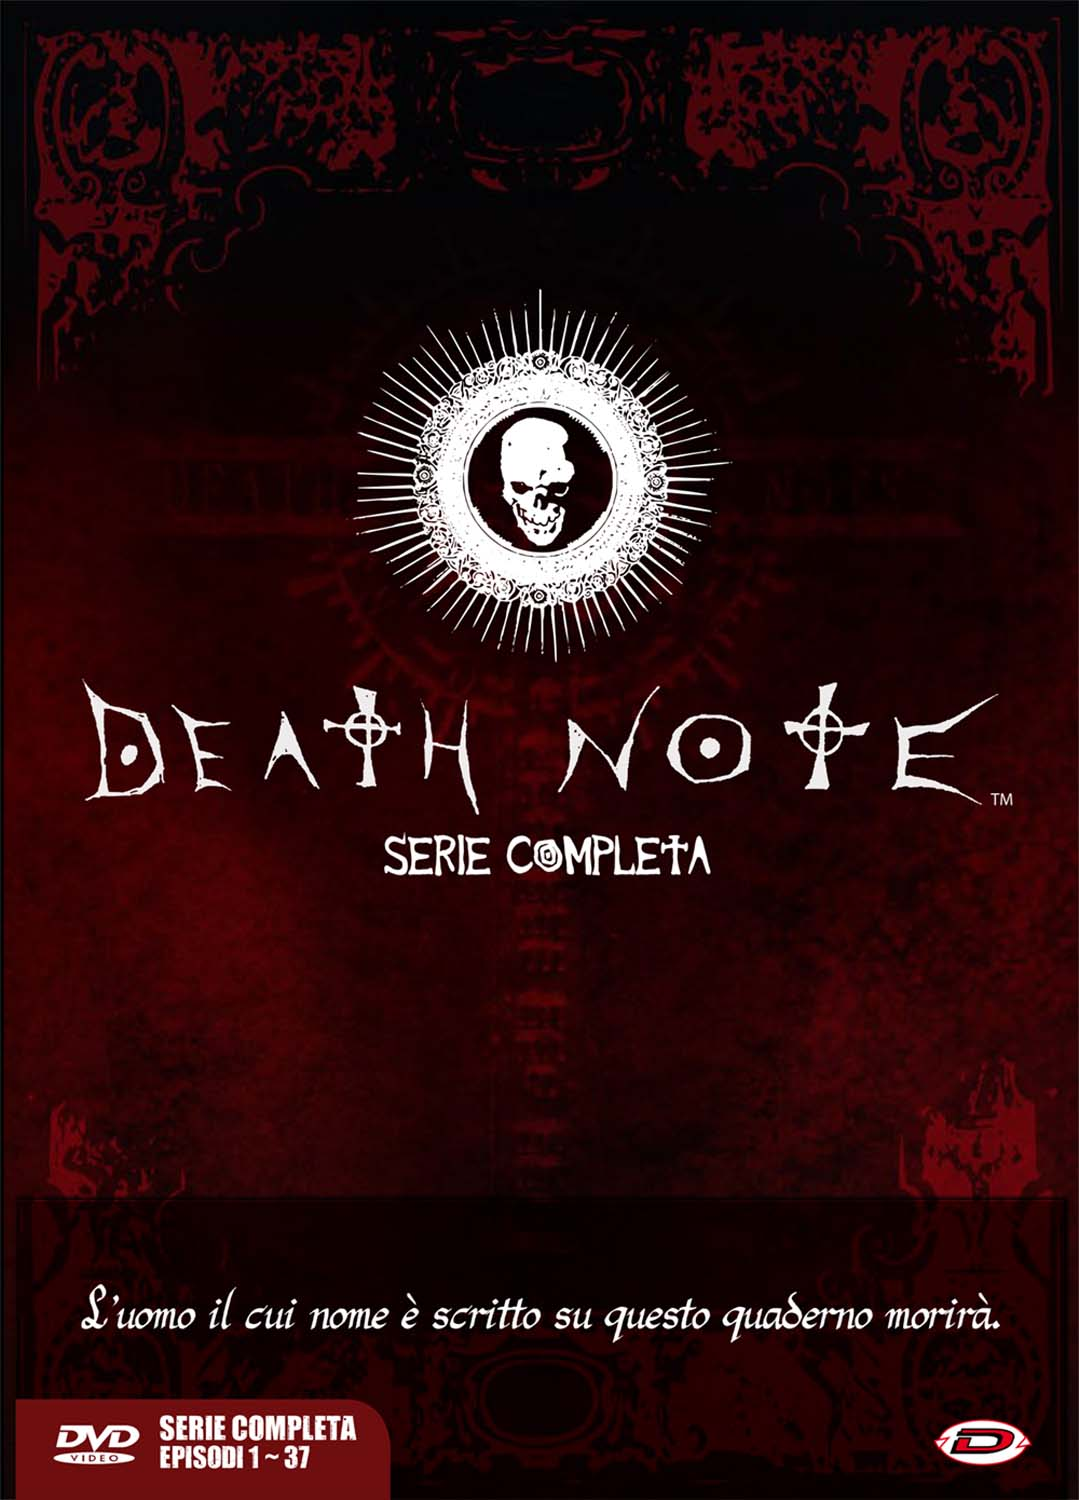 COF.DEATH NOTE - THE COMPLETE SERIES (EPS 01-37) (5 DVD) (DVD)